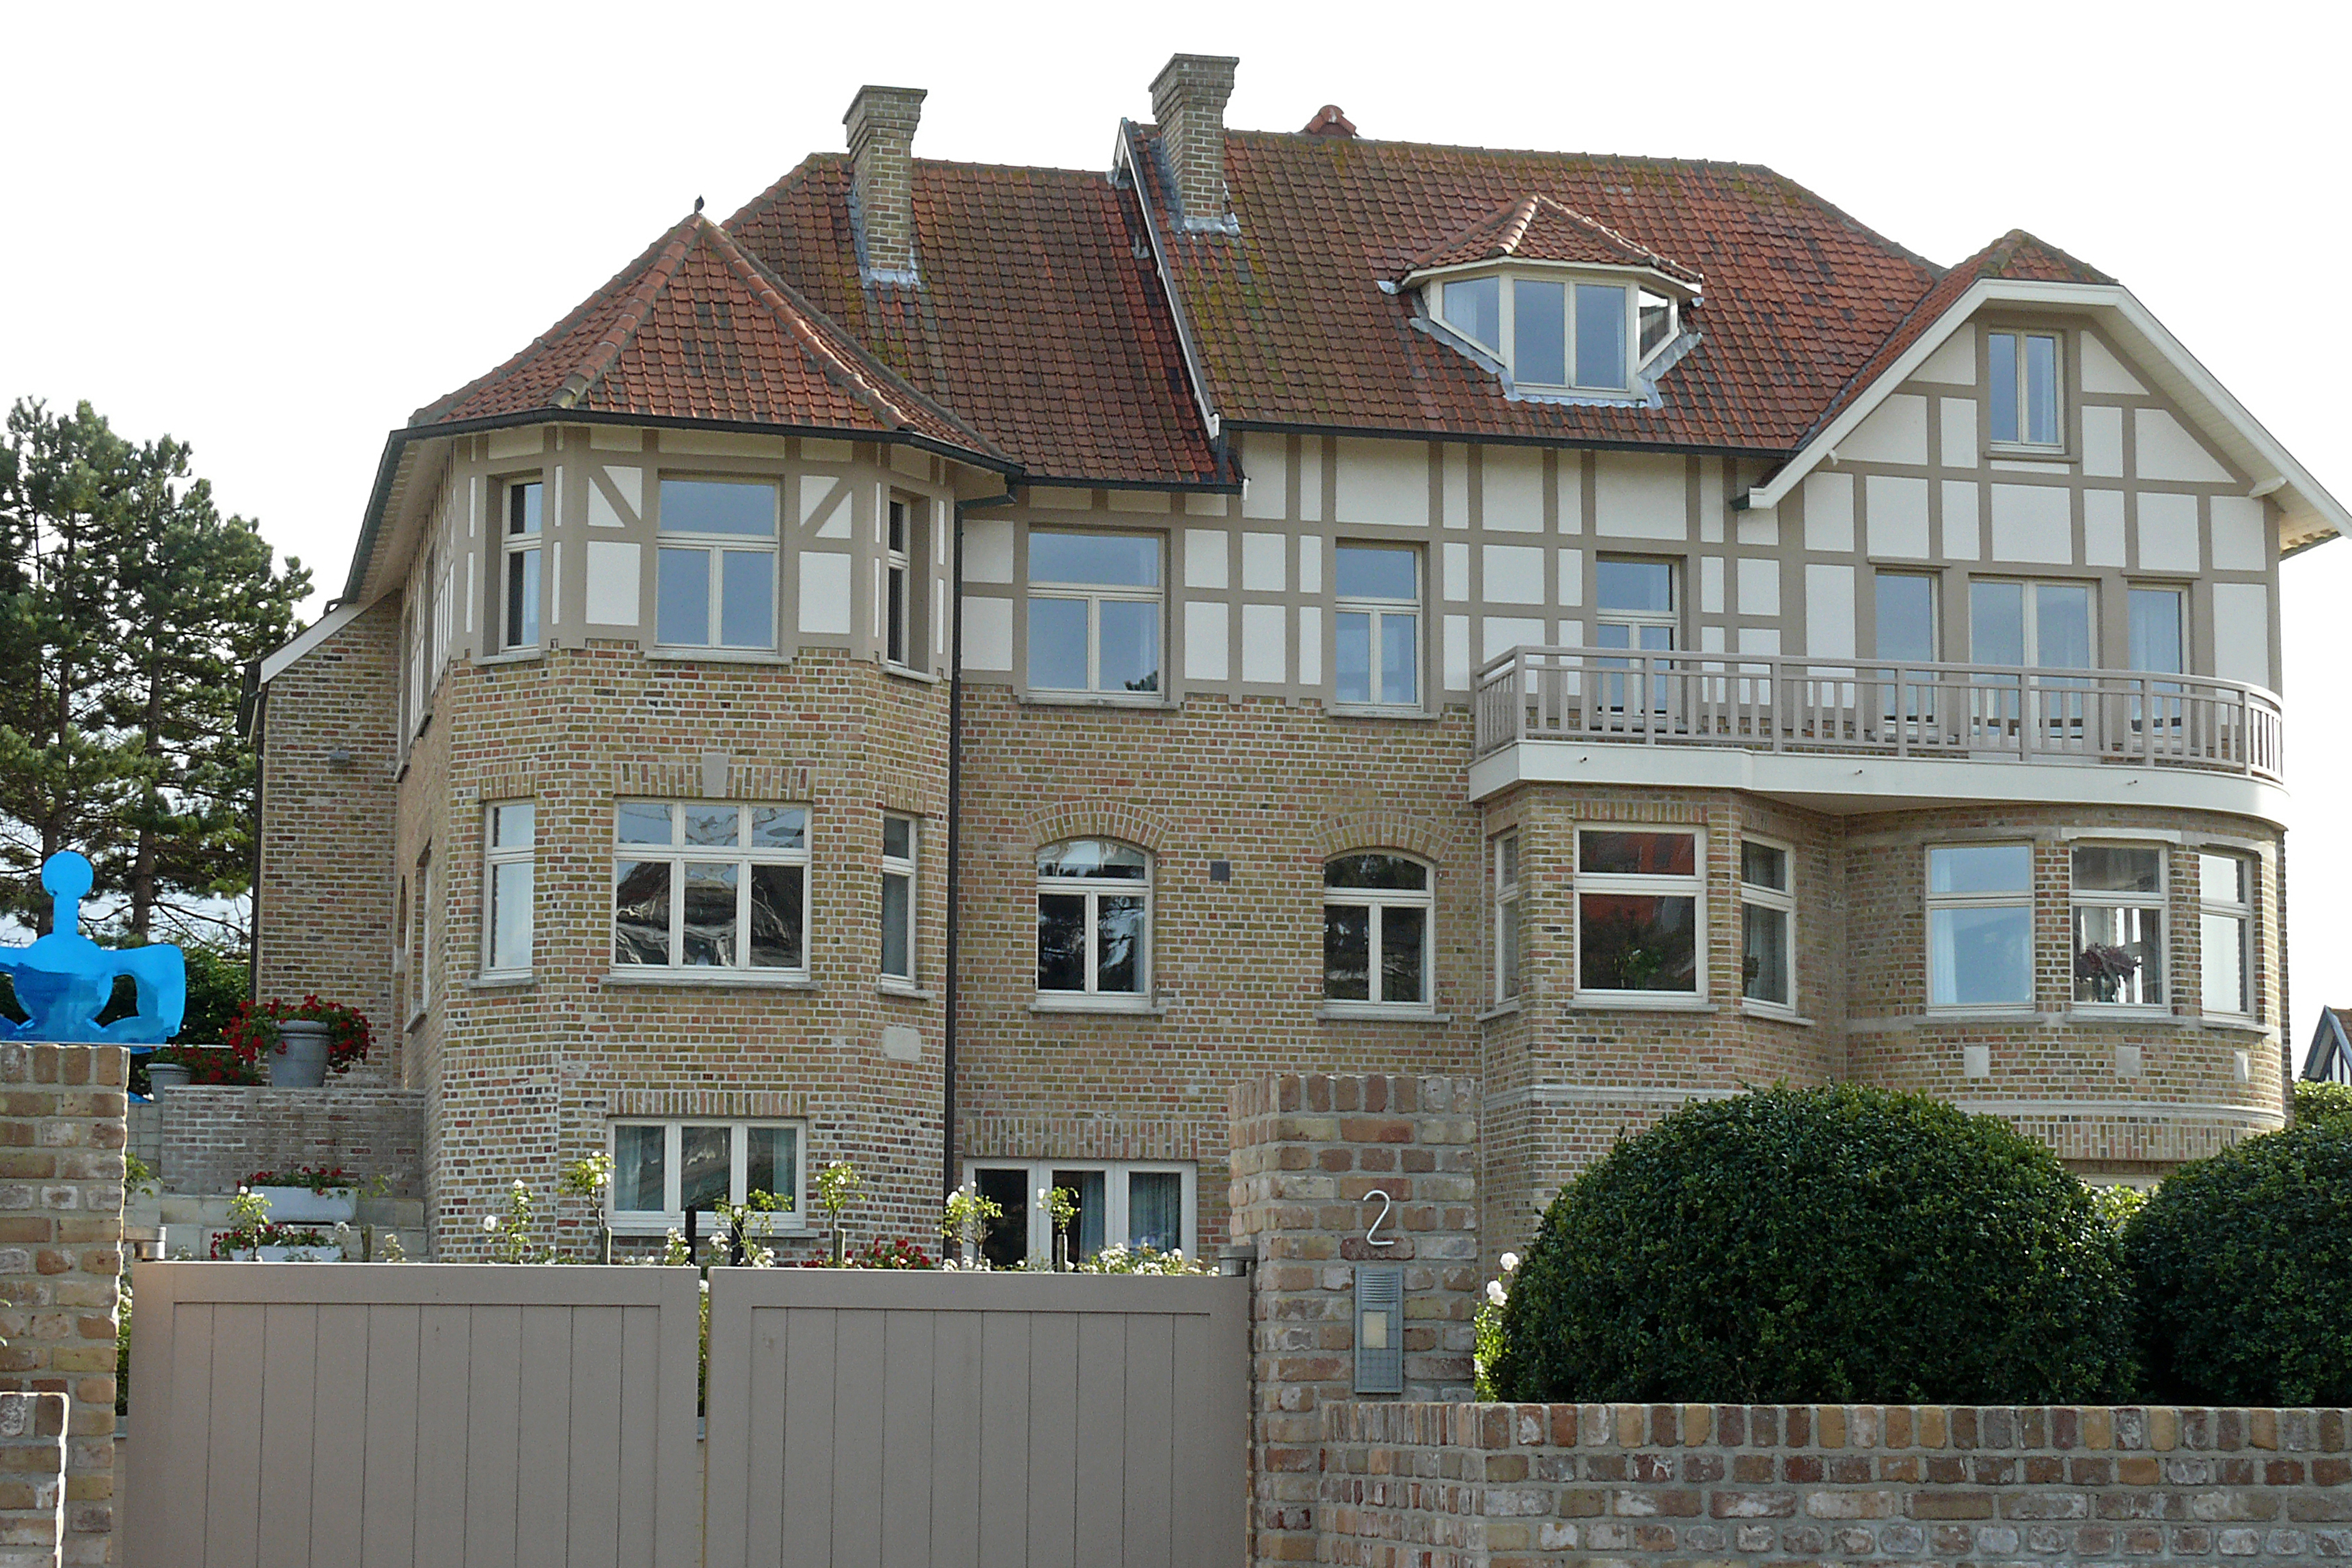 Bestand gay grote villa in cottagestijl prins for Grote villa